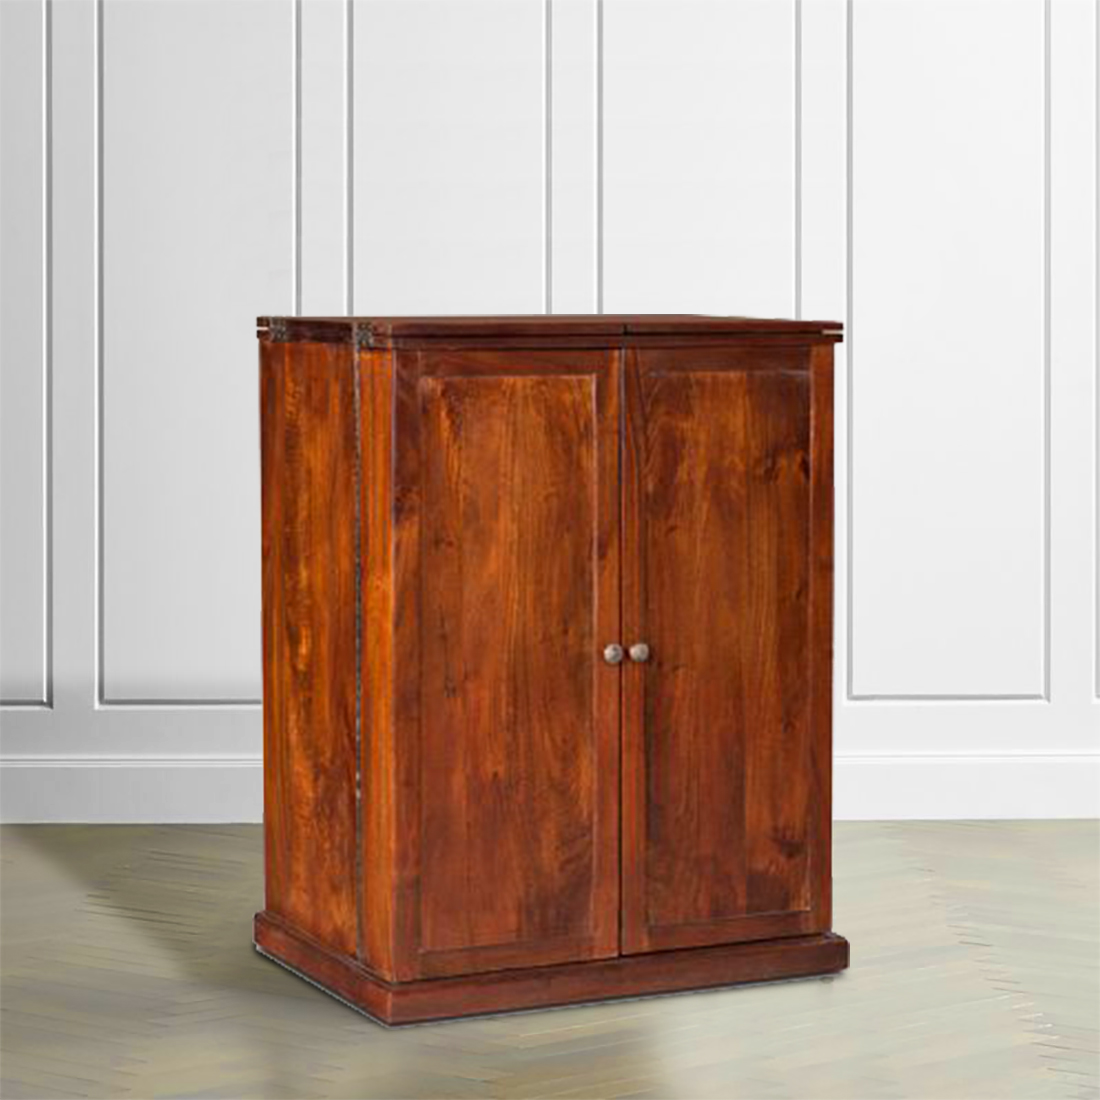 Nordic Engineered Wood Bar Cabinet in Chest Nut Brown Colour by HomeTown